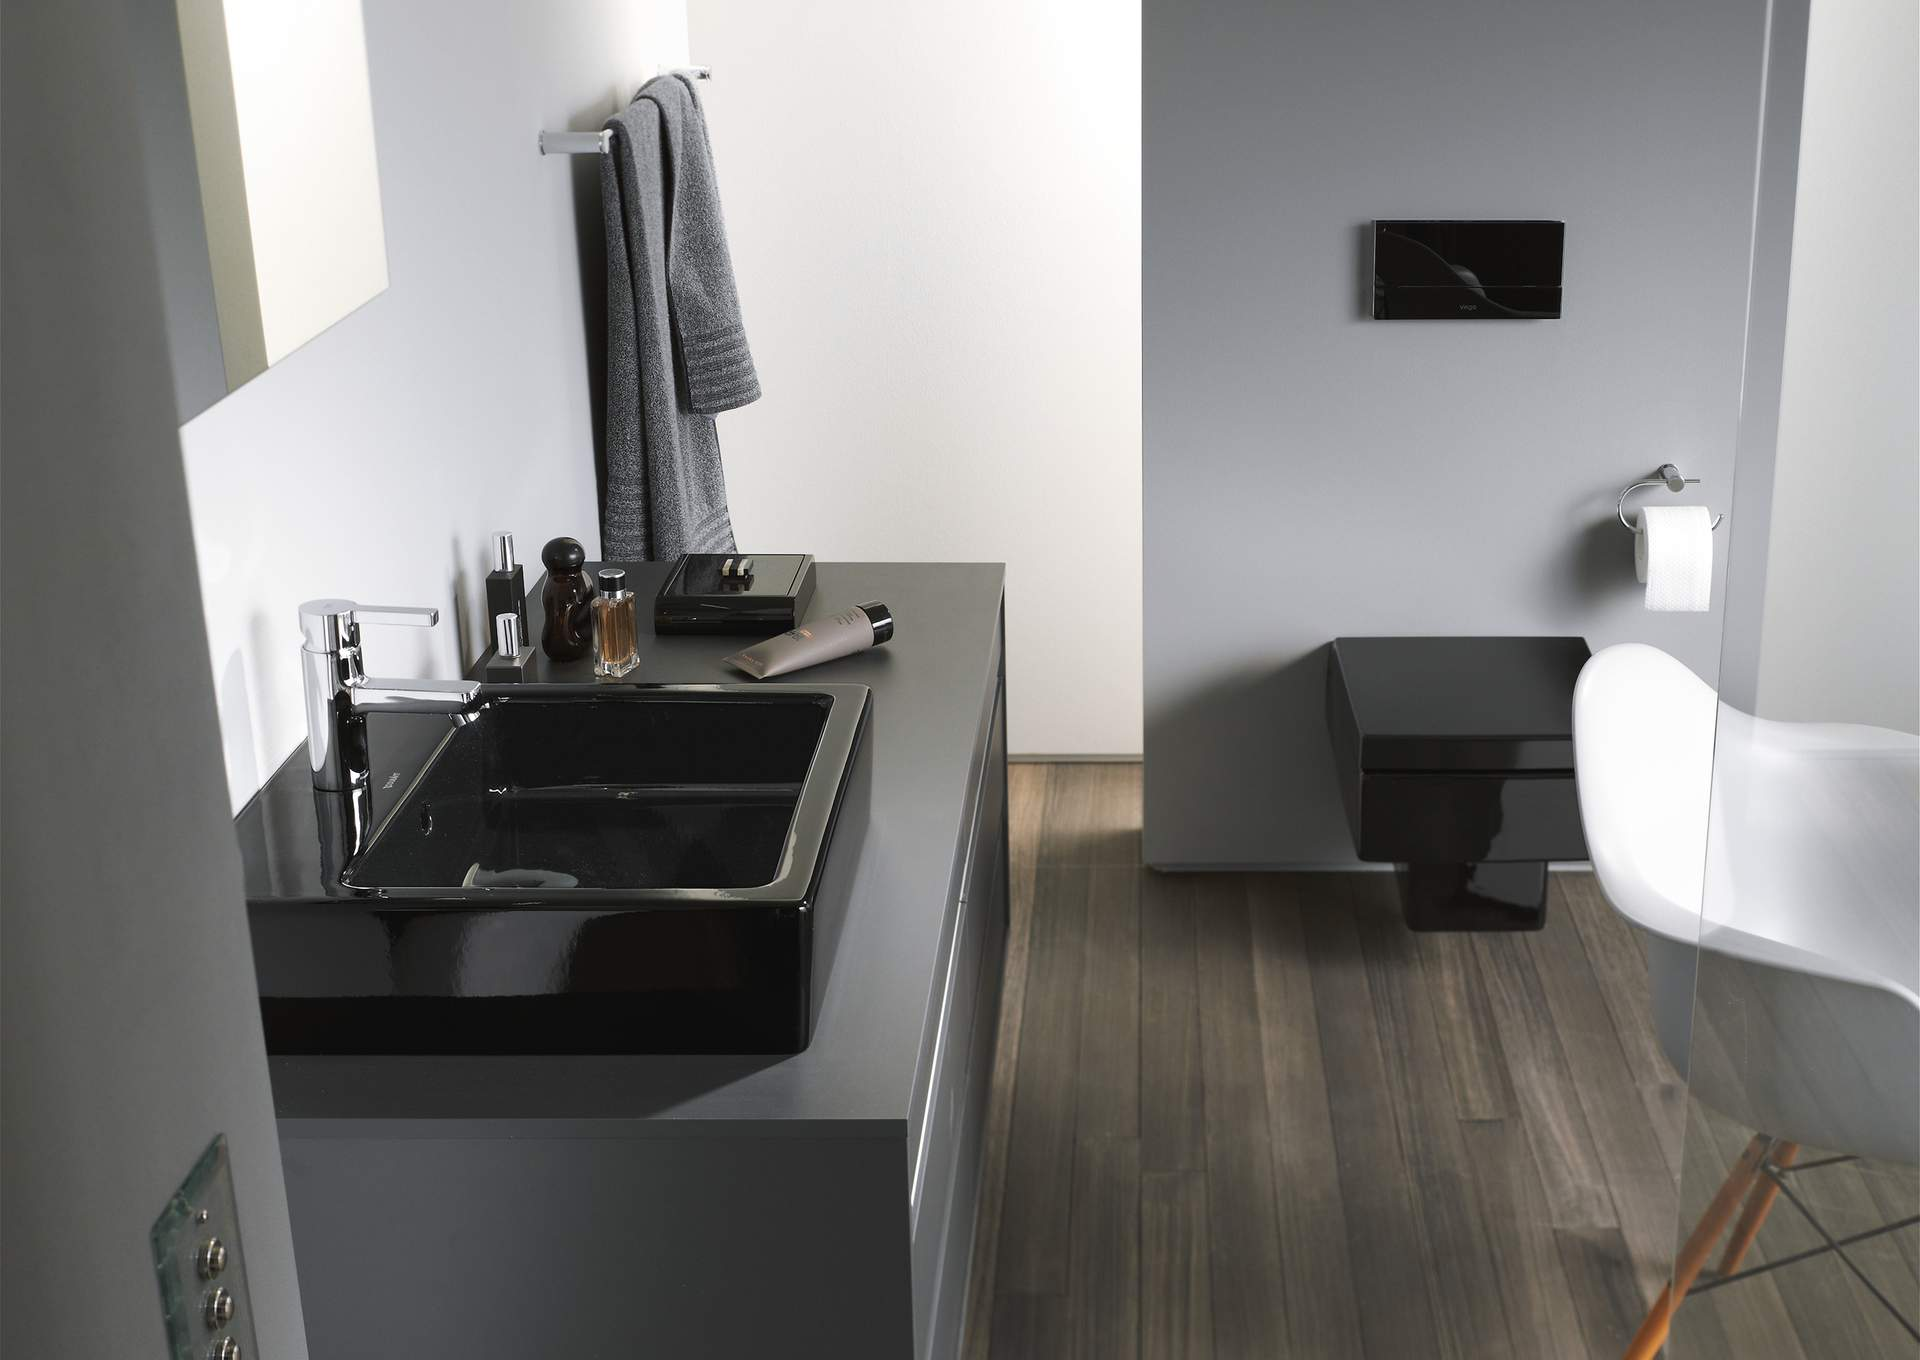 vero washbasin furniture washbasin 045450 duravit. Black Bedroom Furniture Sets. Home Design Ideas